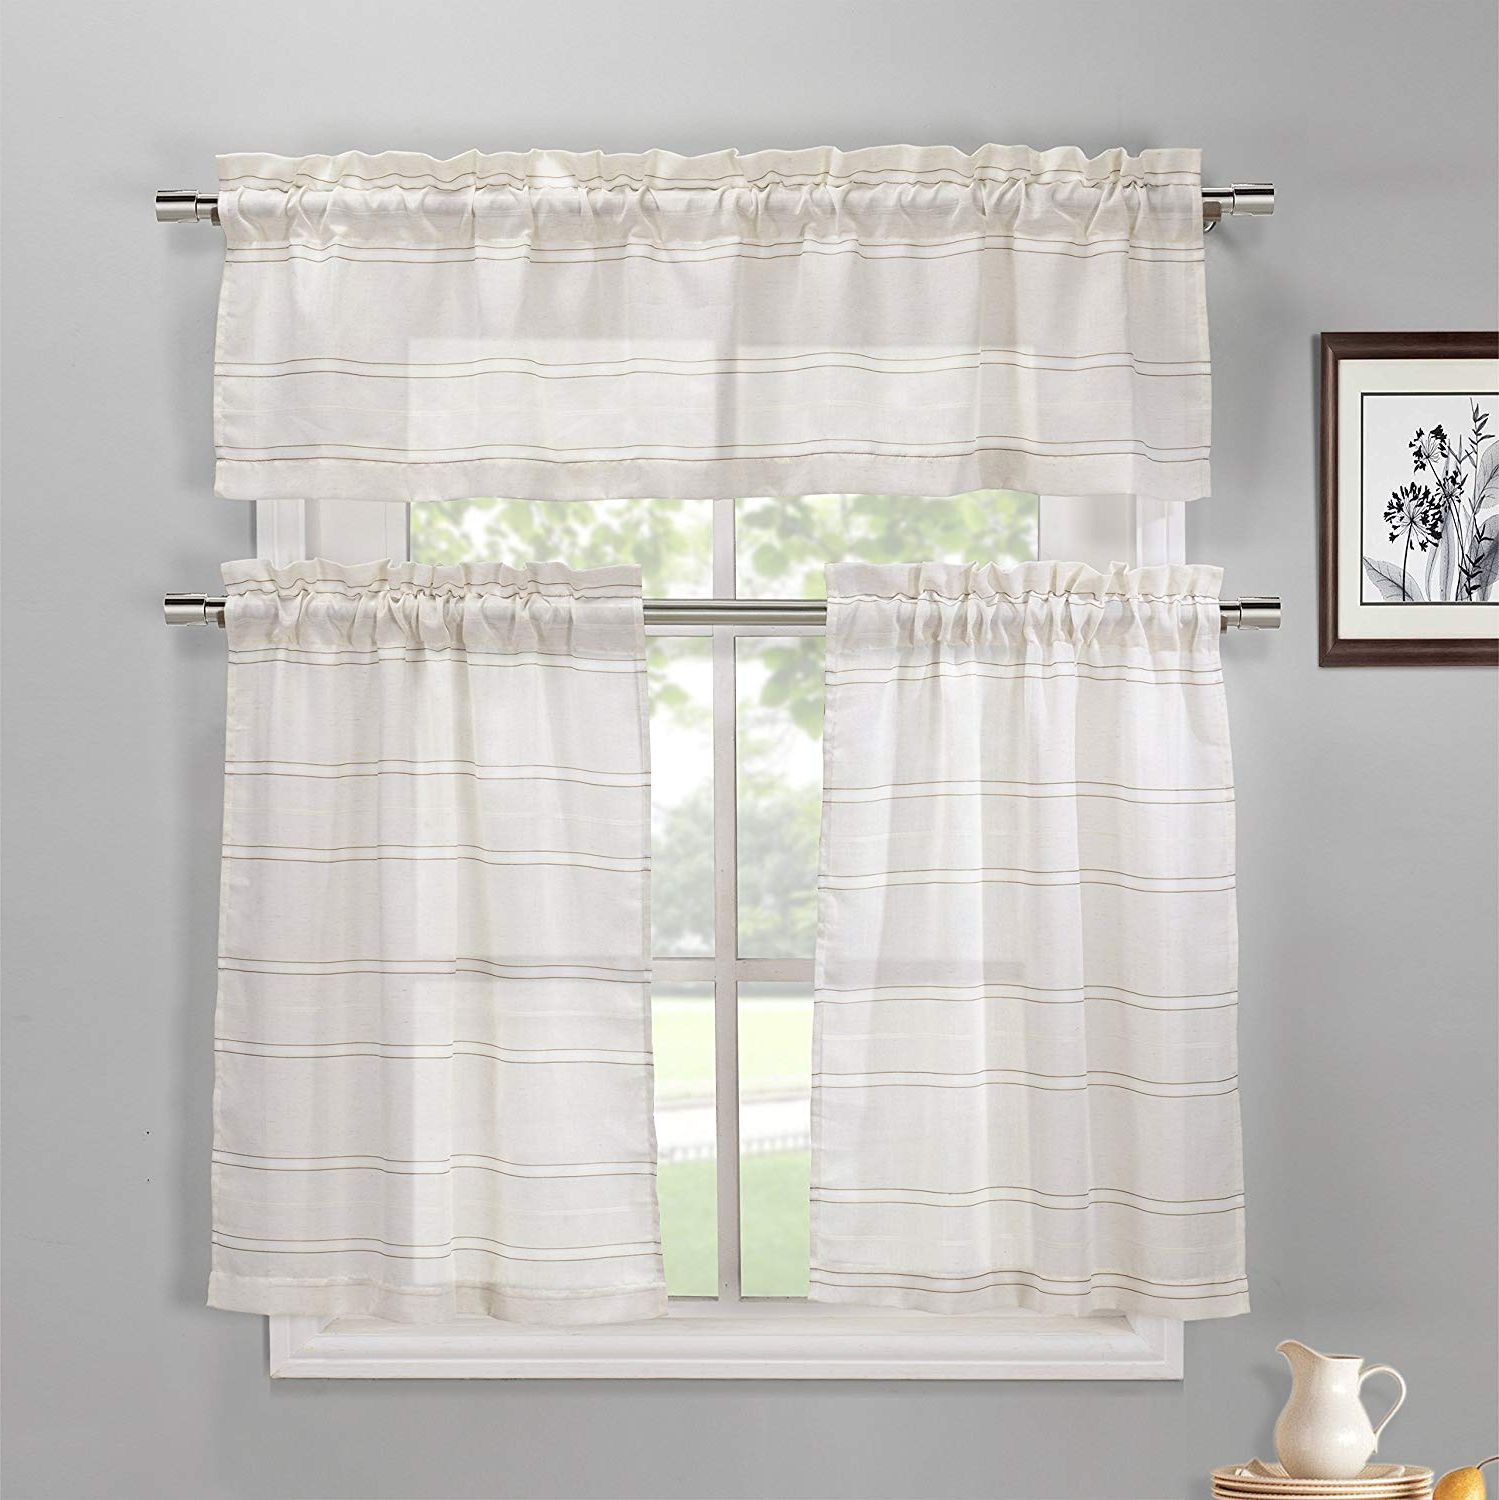 Most Popular Duck River Textile Maui Striped Kitchen 3 Piece Window Curtain Tier & Valance Set, 2 30 X 36 & One 60 X 16, Coffee For Window Curtain Tier And Valance Sets (View 17 of 20)